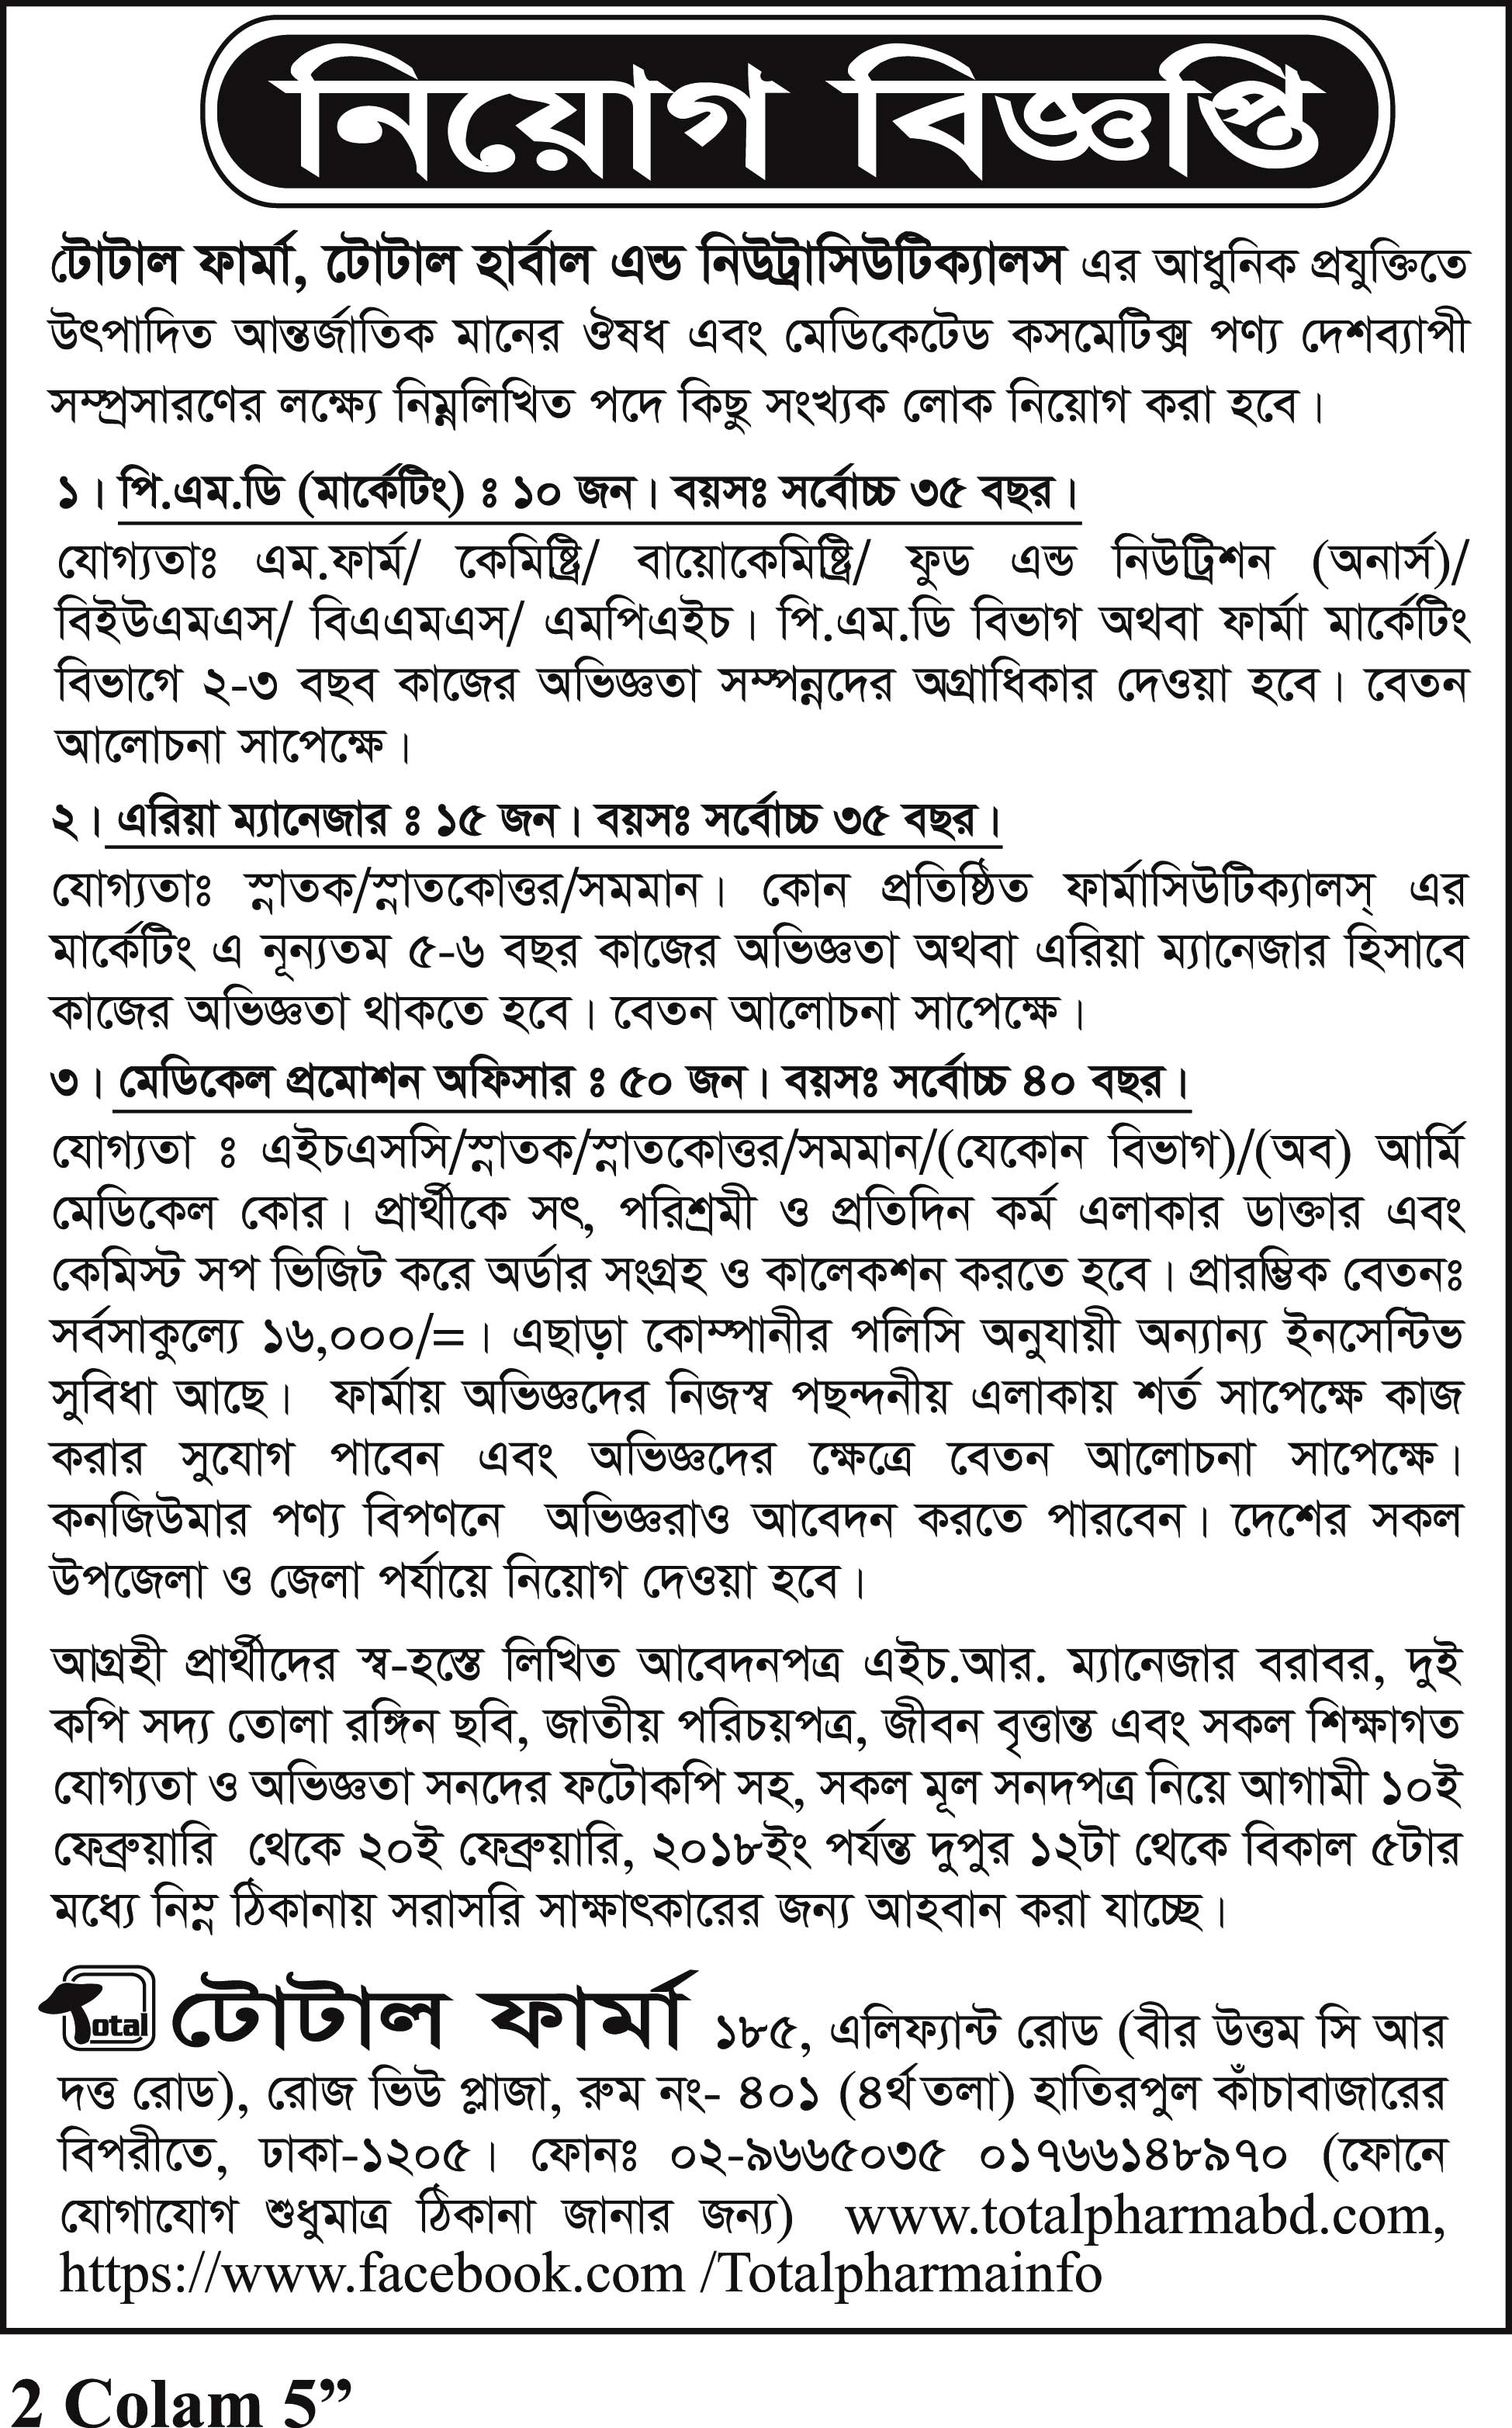 Total Pharma LTD Job Circular 2020